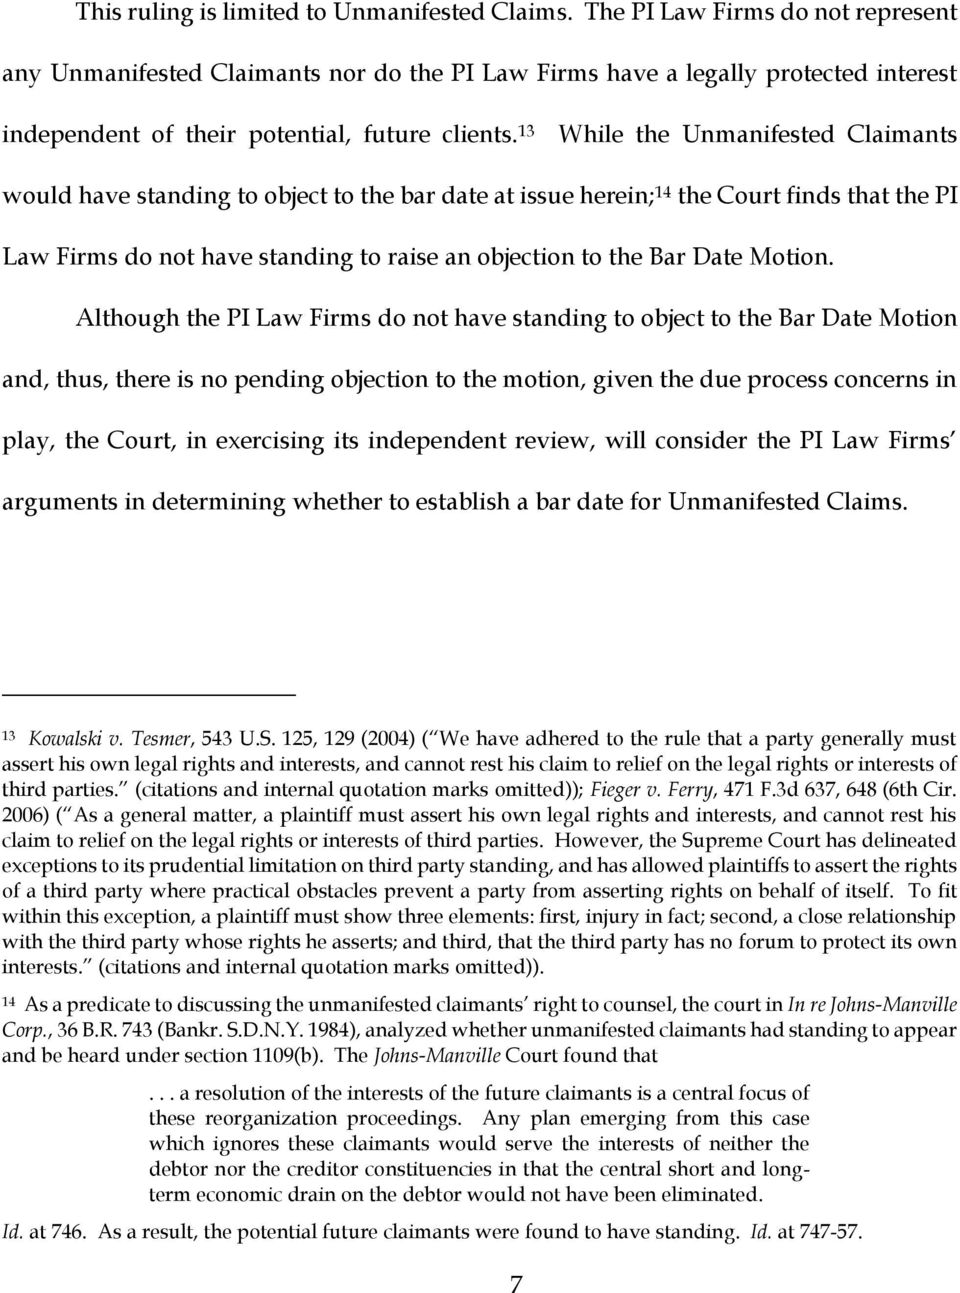 13 While the Unmanifested Claimants would have standing to object to the bar date at issue herein; 14 the Court finds that the PI Law Firms do not have standing to raise an objection to the Bar Date